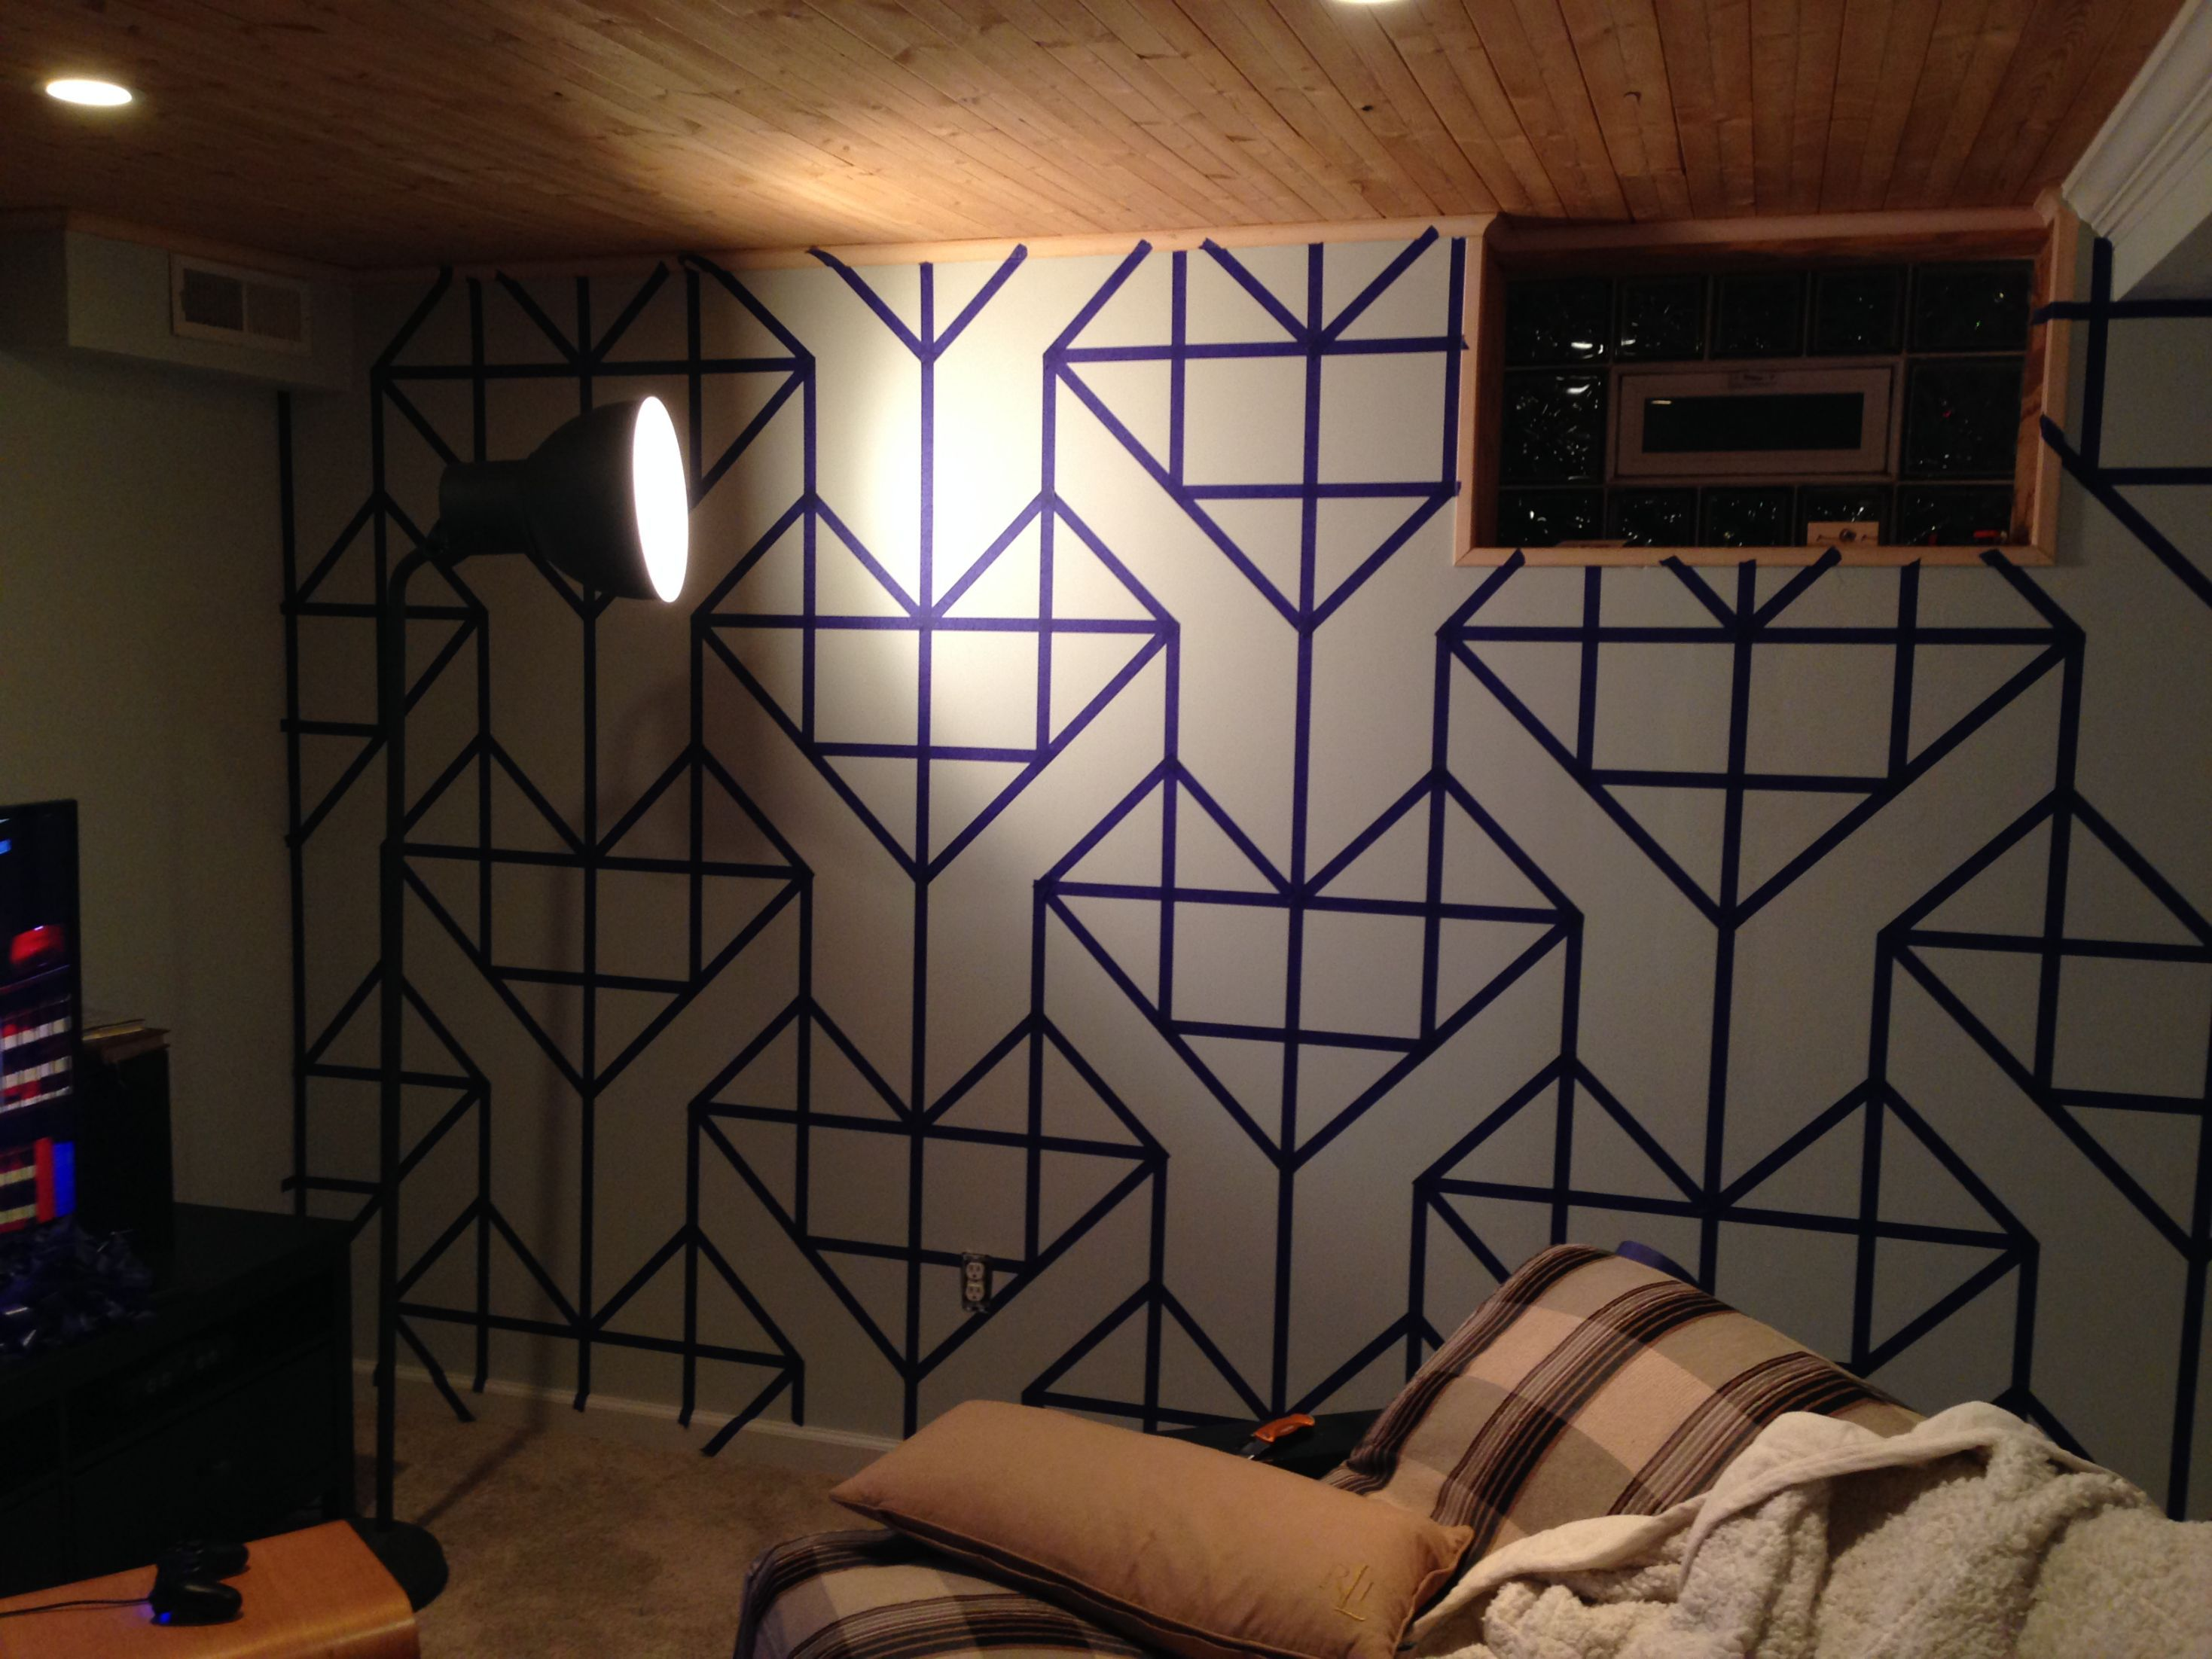 paint wall with washi tape - Paint Tape Design Ideas